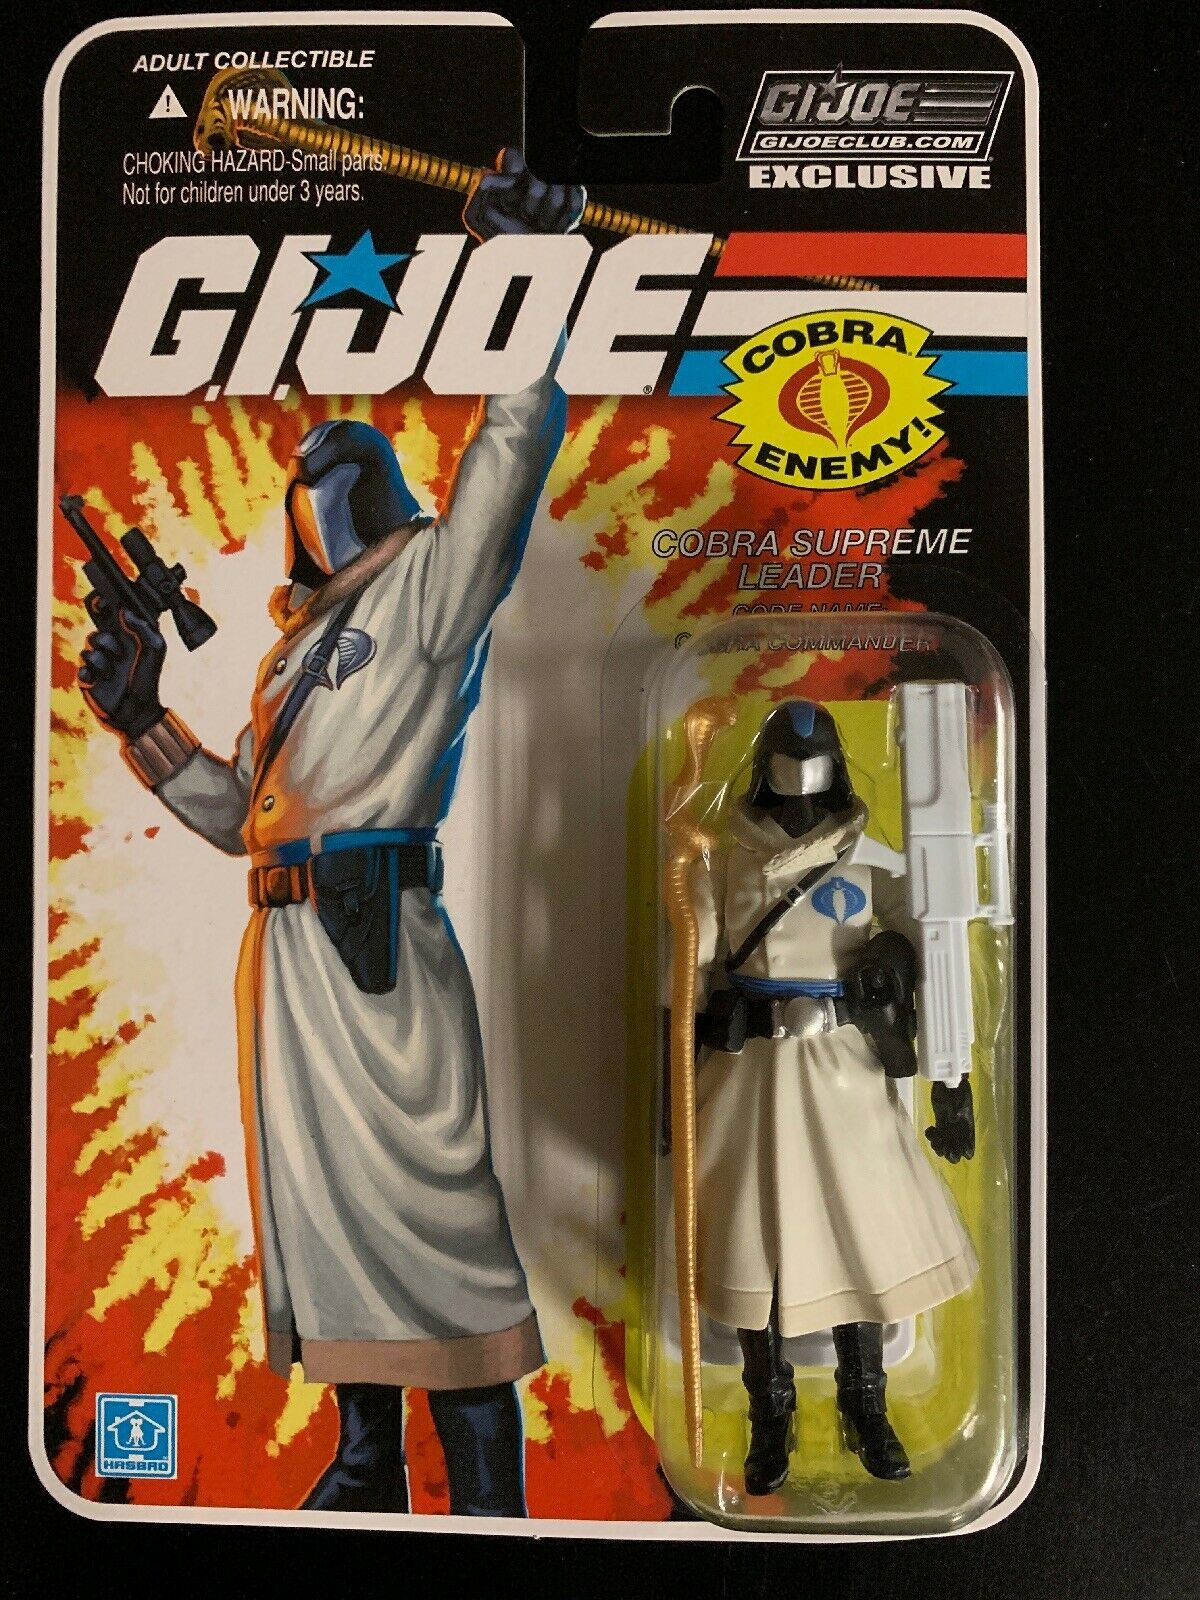 GI JOE FSS 7.0 06 Cobra Commander arctic attire MISP